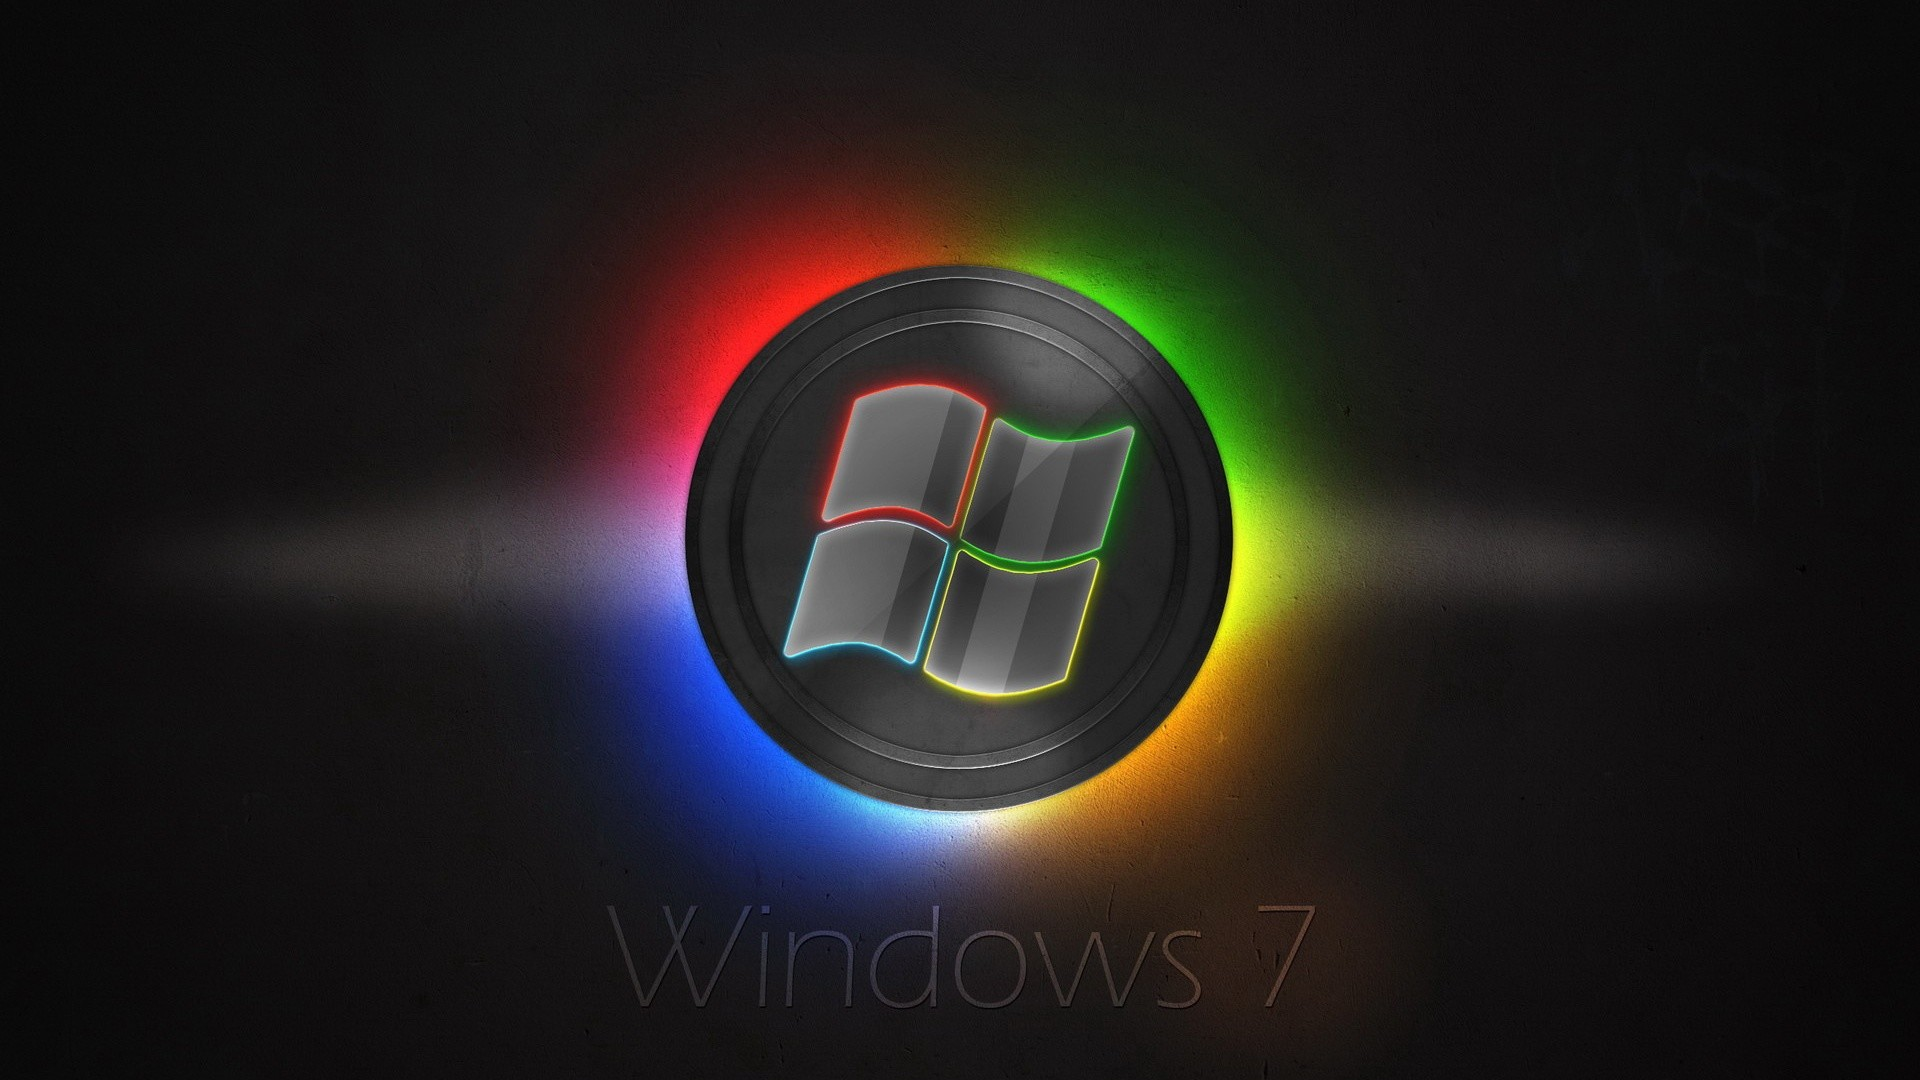 HD Windows Logo Wallpapers 59 Images